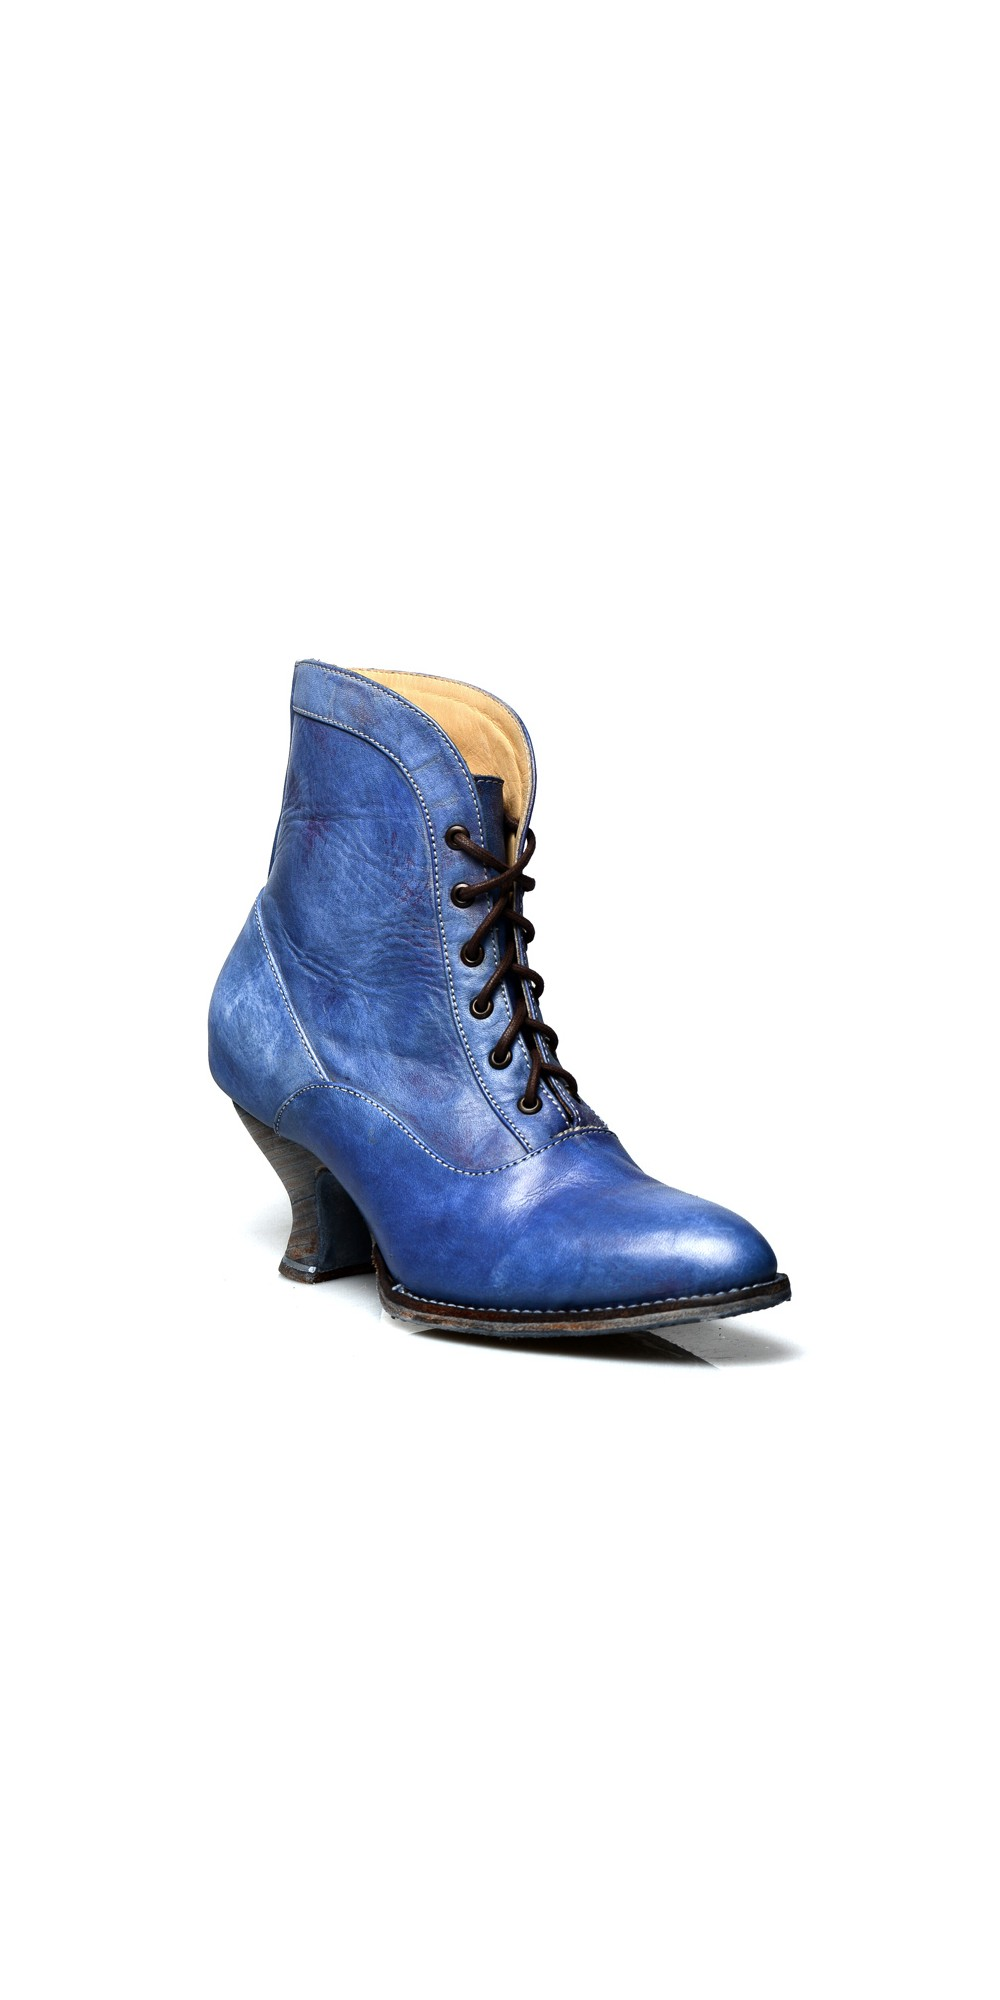 Vintage Style Victorian Lace Up Leather Boots In Steel Blue